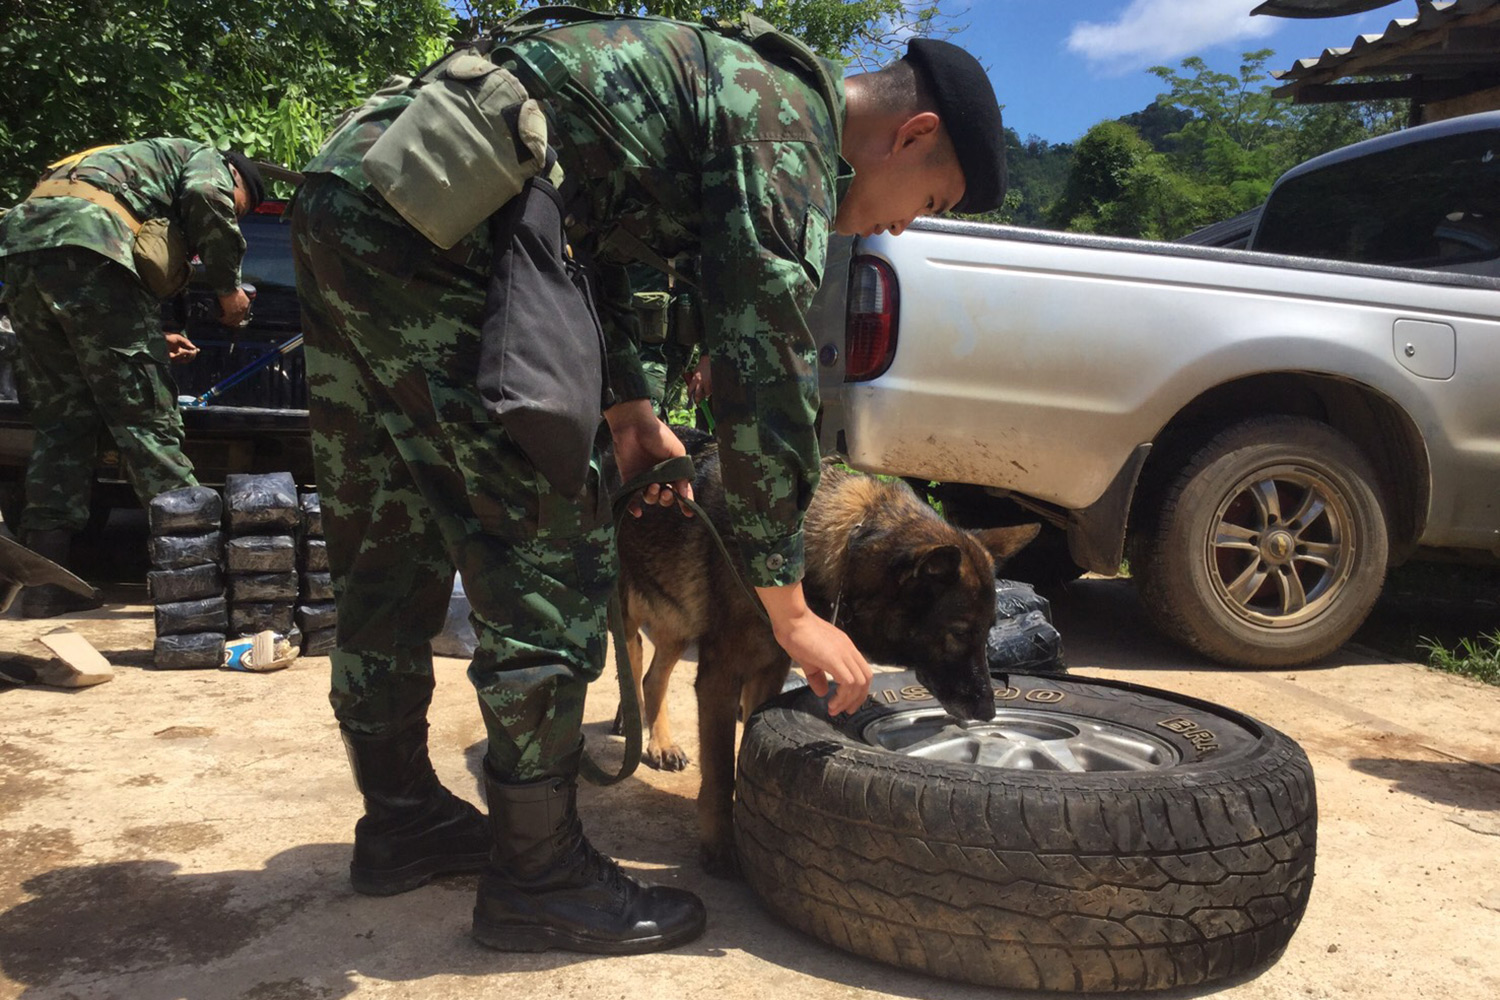 A sniffer dog detects drugs in a spare car tyre of two pickup trucks stopped for a search at a joint checkpoint in Sangkhla Buri district, Kanchanaburi, on Thursday. (Photo by Piyarat Chongcharoen)